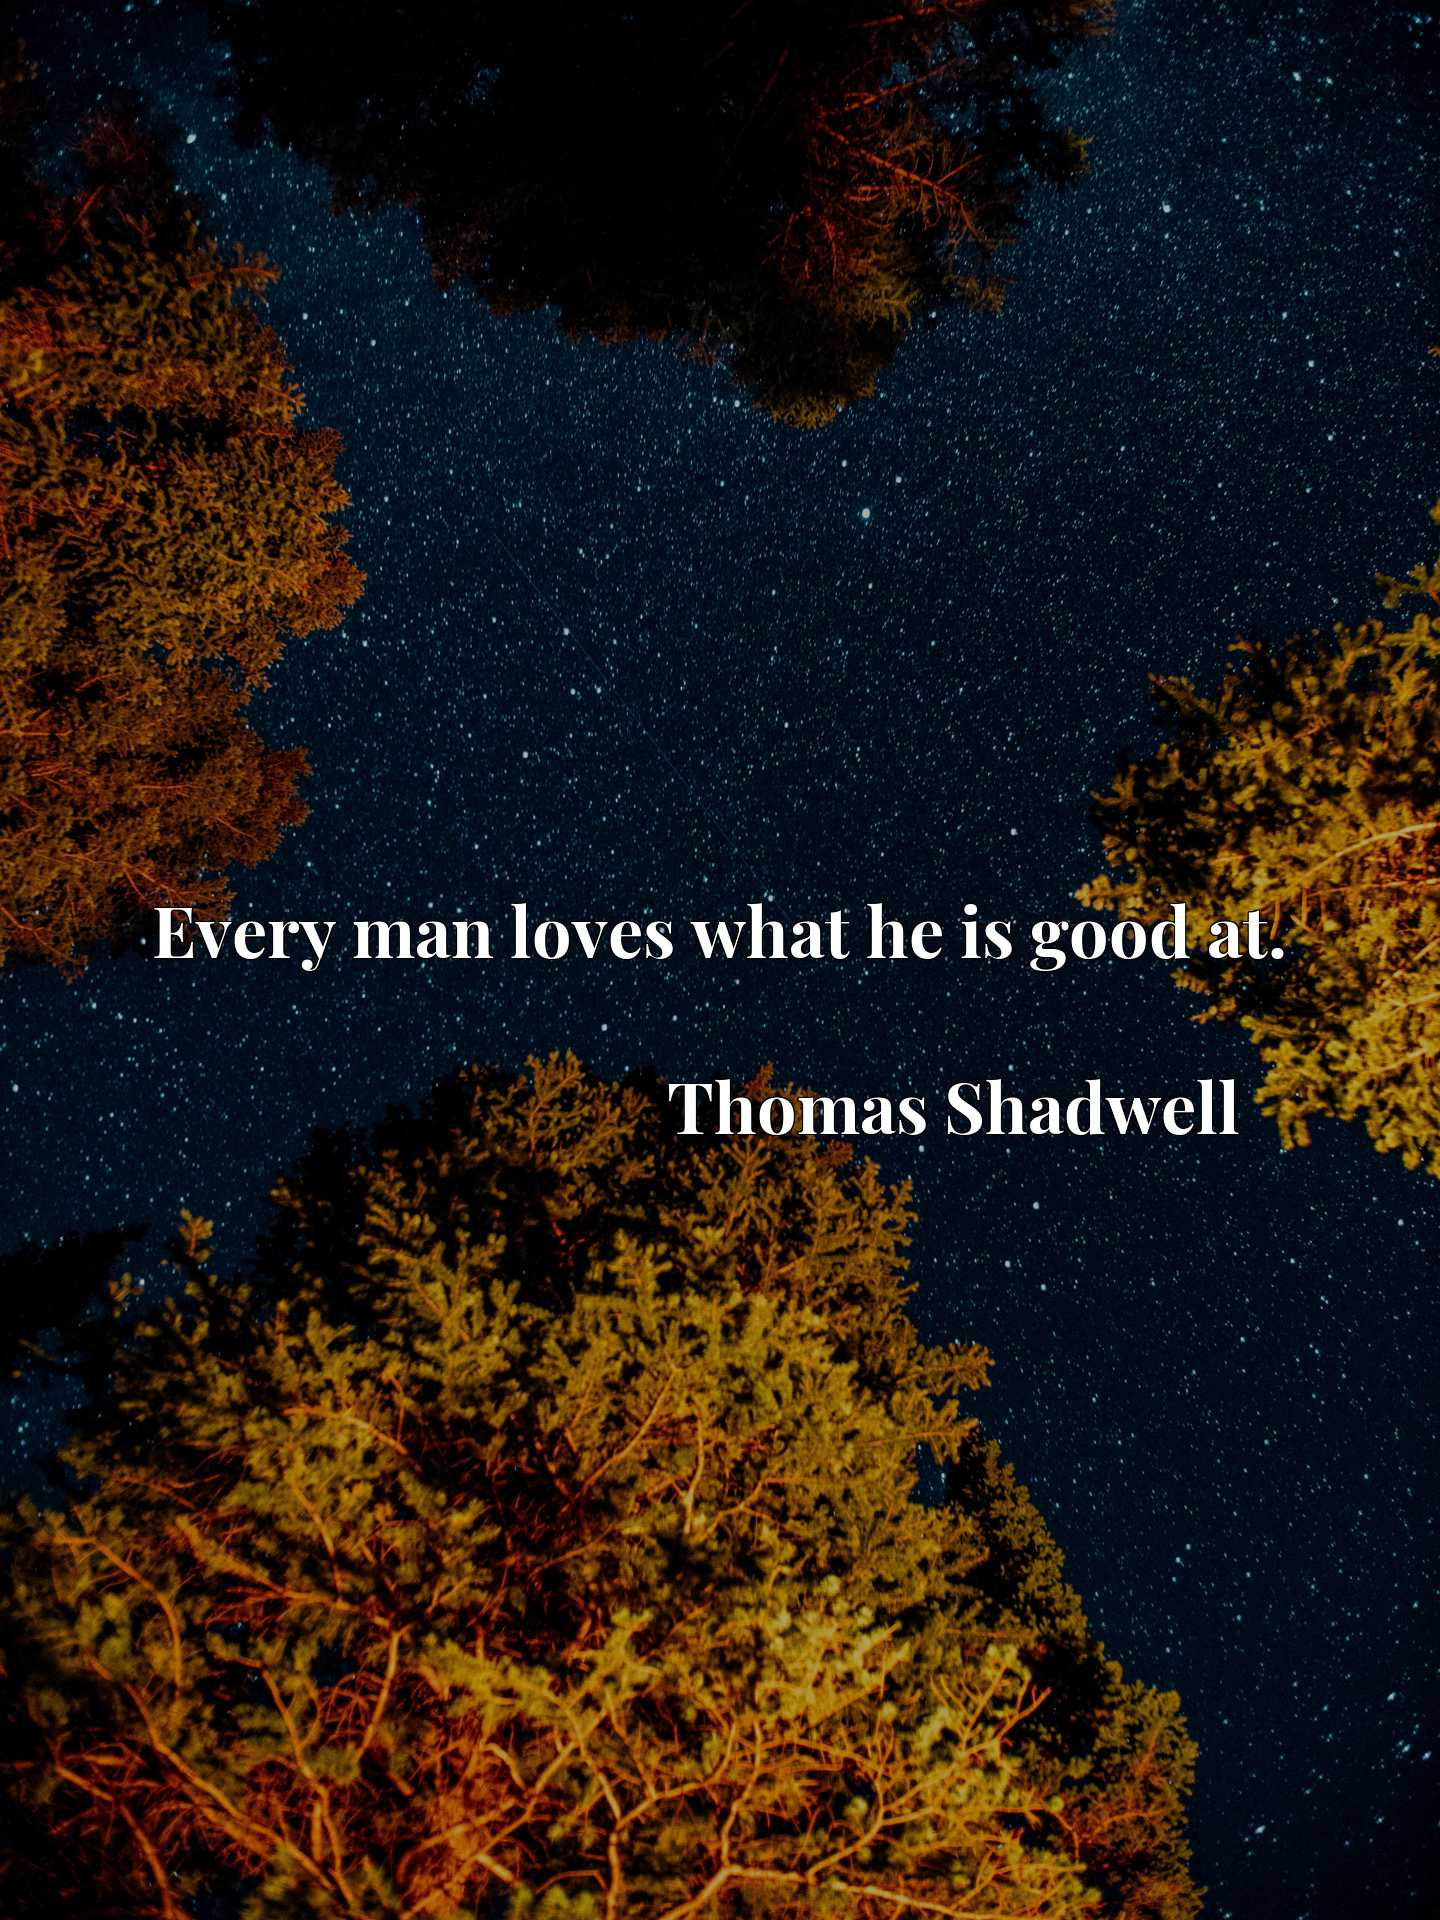 Quote Picture :Every man loves what he is good at.